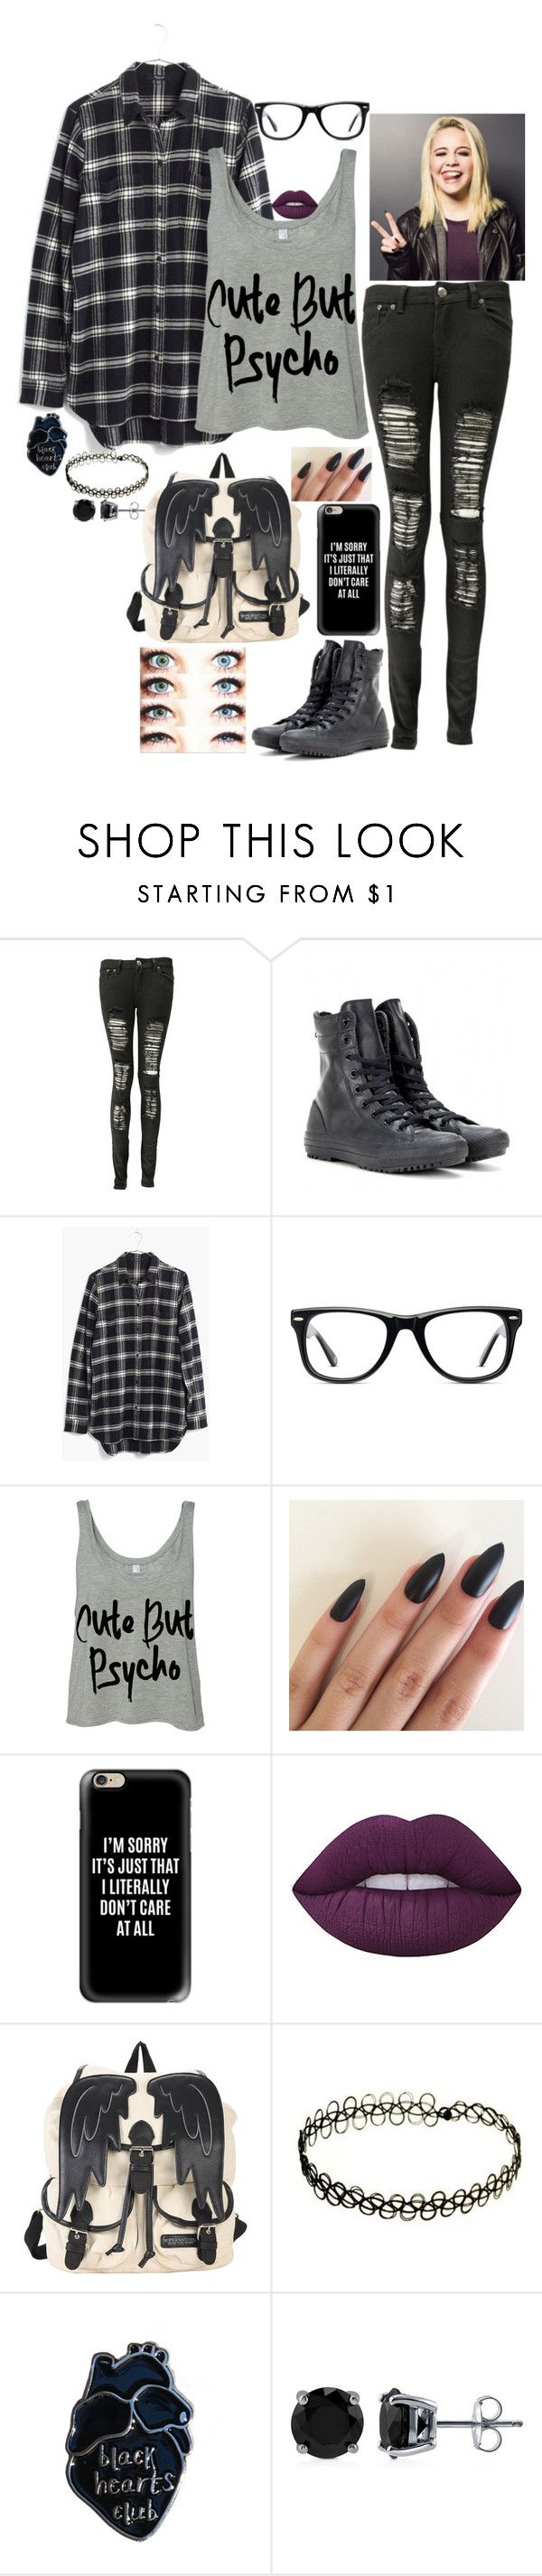 """I'm Not Goth I'm Emo"" by lilypad2102 on Polyvore featuring Boohoo, Converse, Madewell, Muse, Casetify, Lime Crime, BEA and BERRICLE"